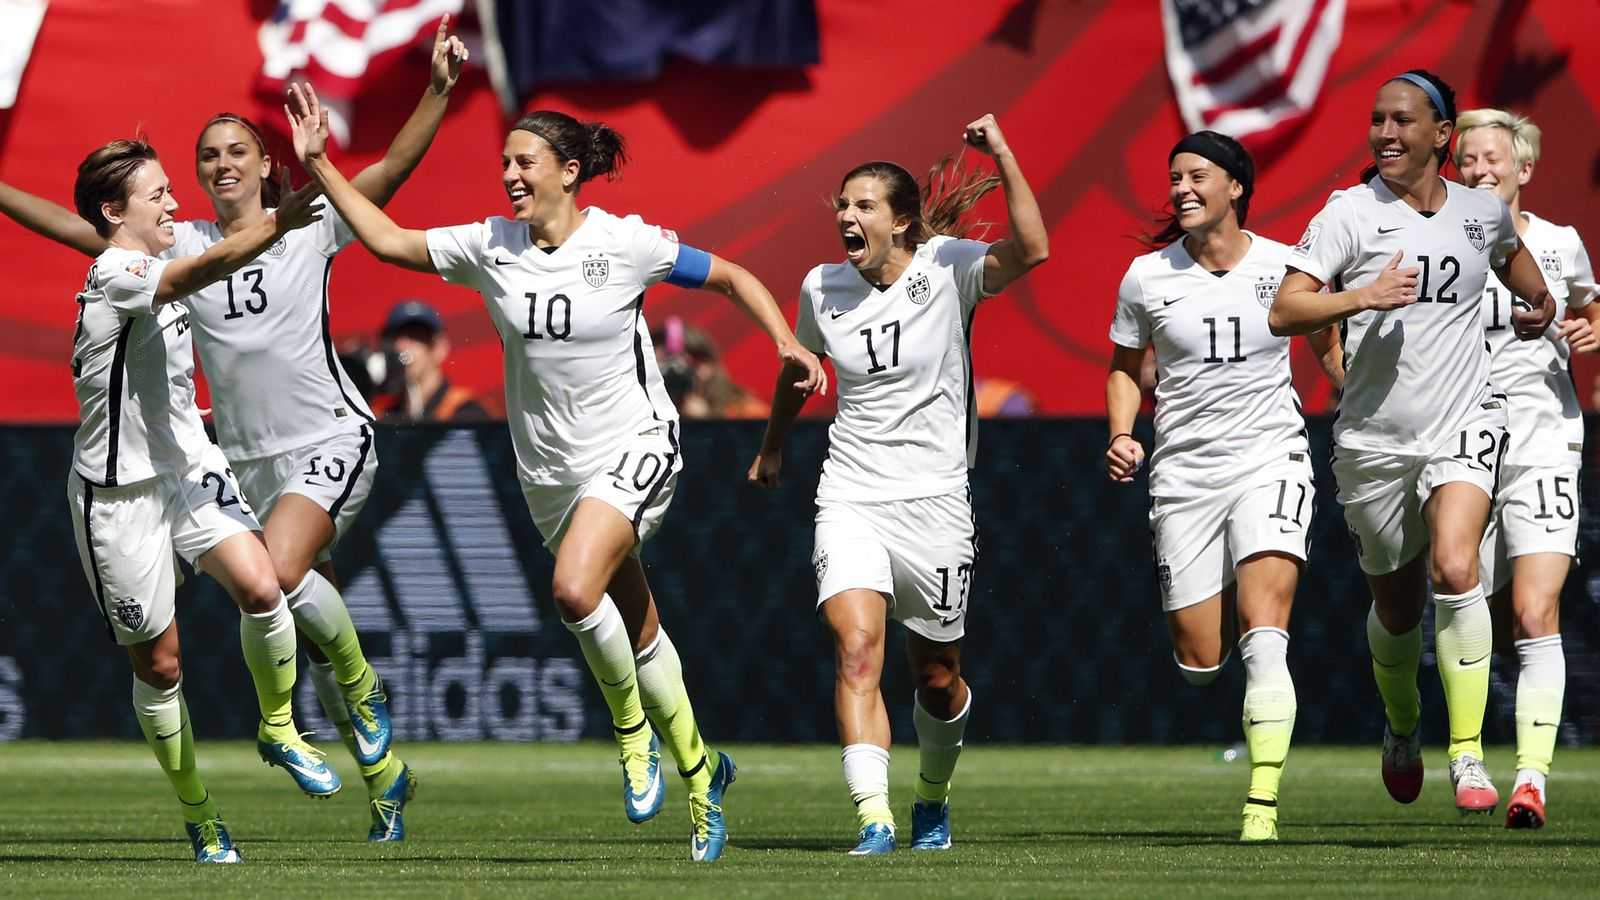 Uswnt wins the world cup with 5 2 victory over japan sbnation publicscrutiny Image collections